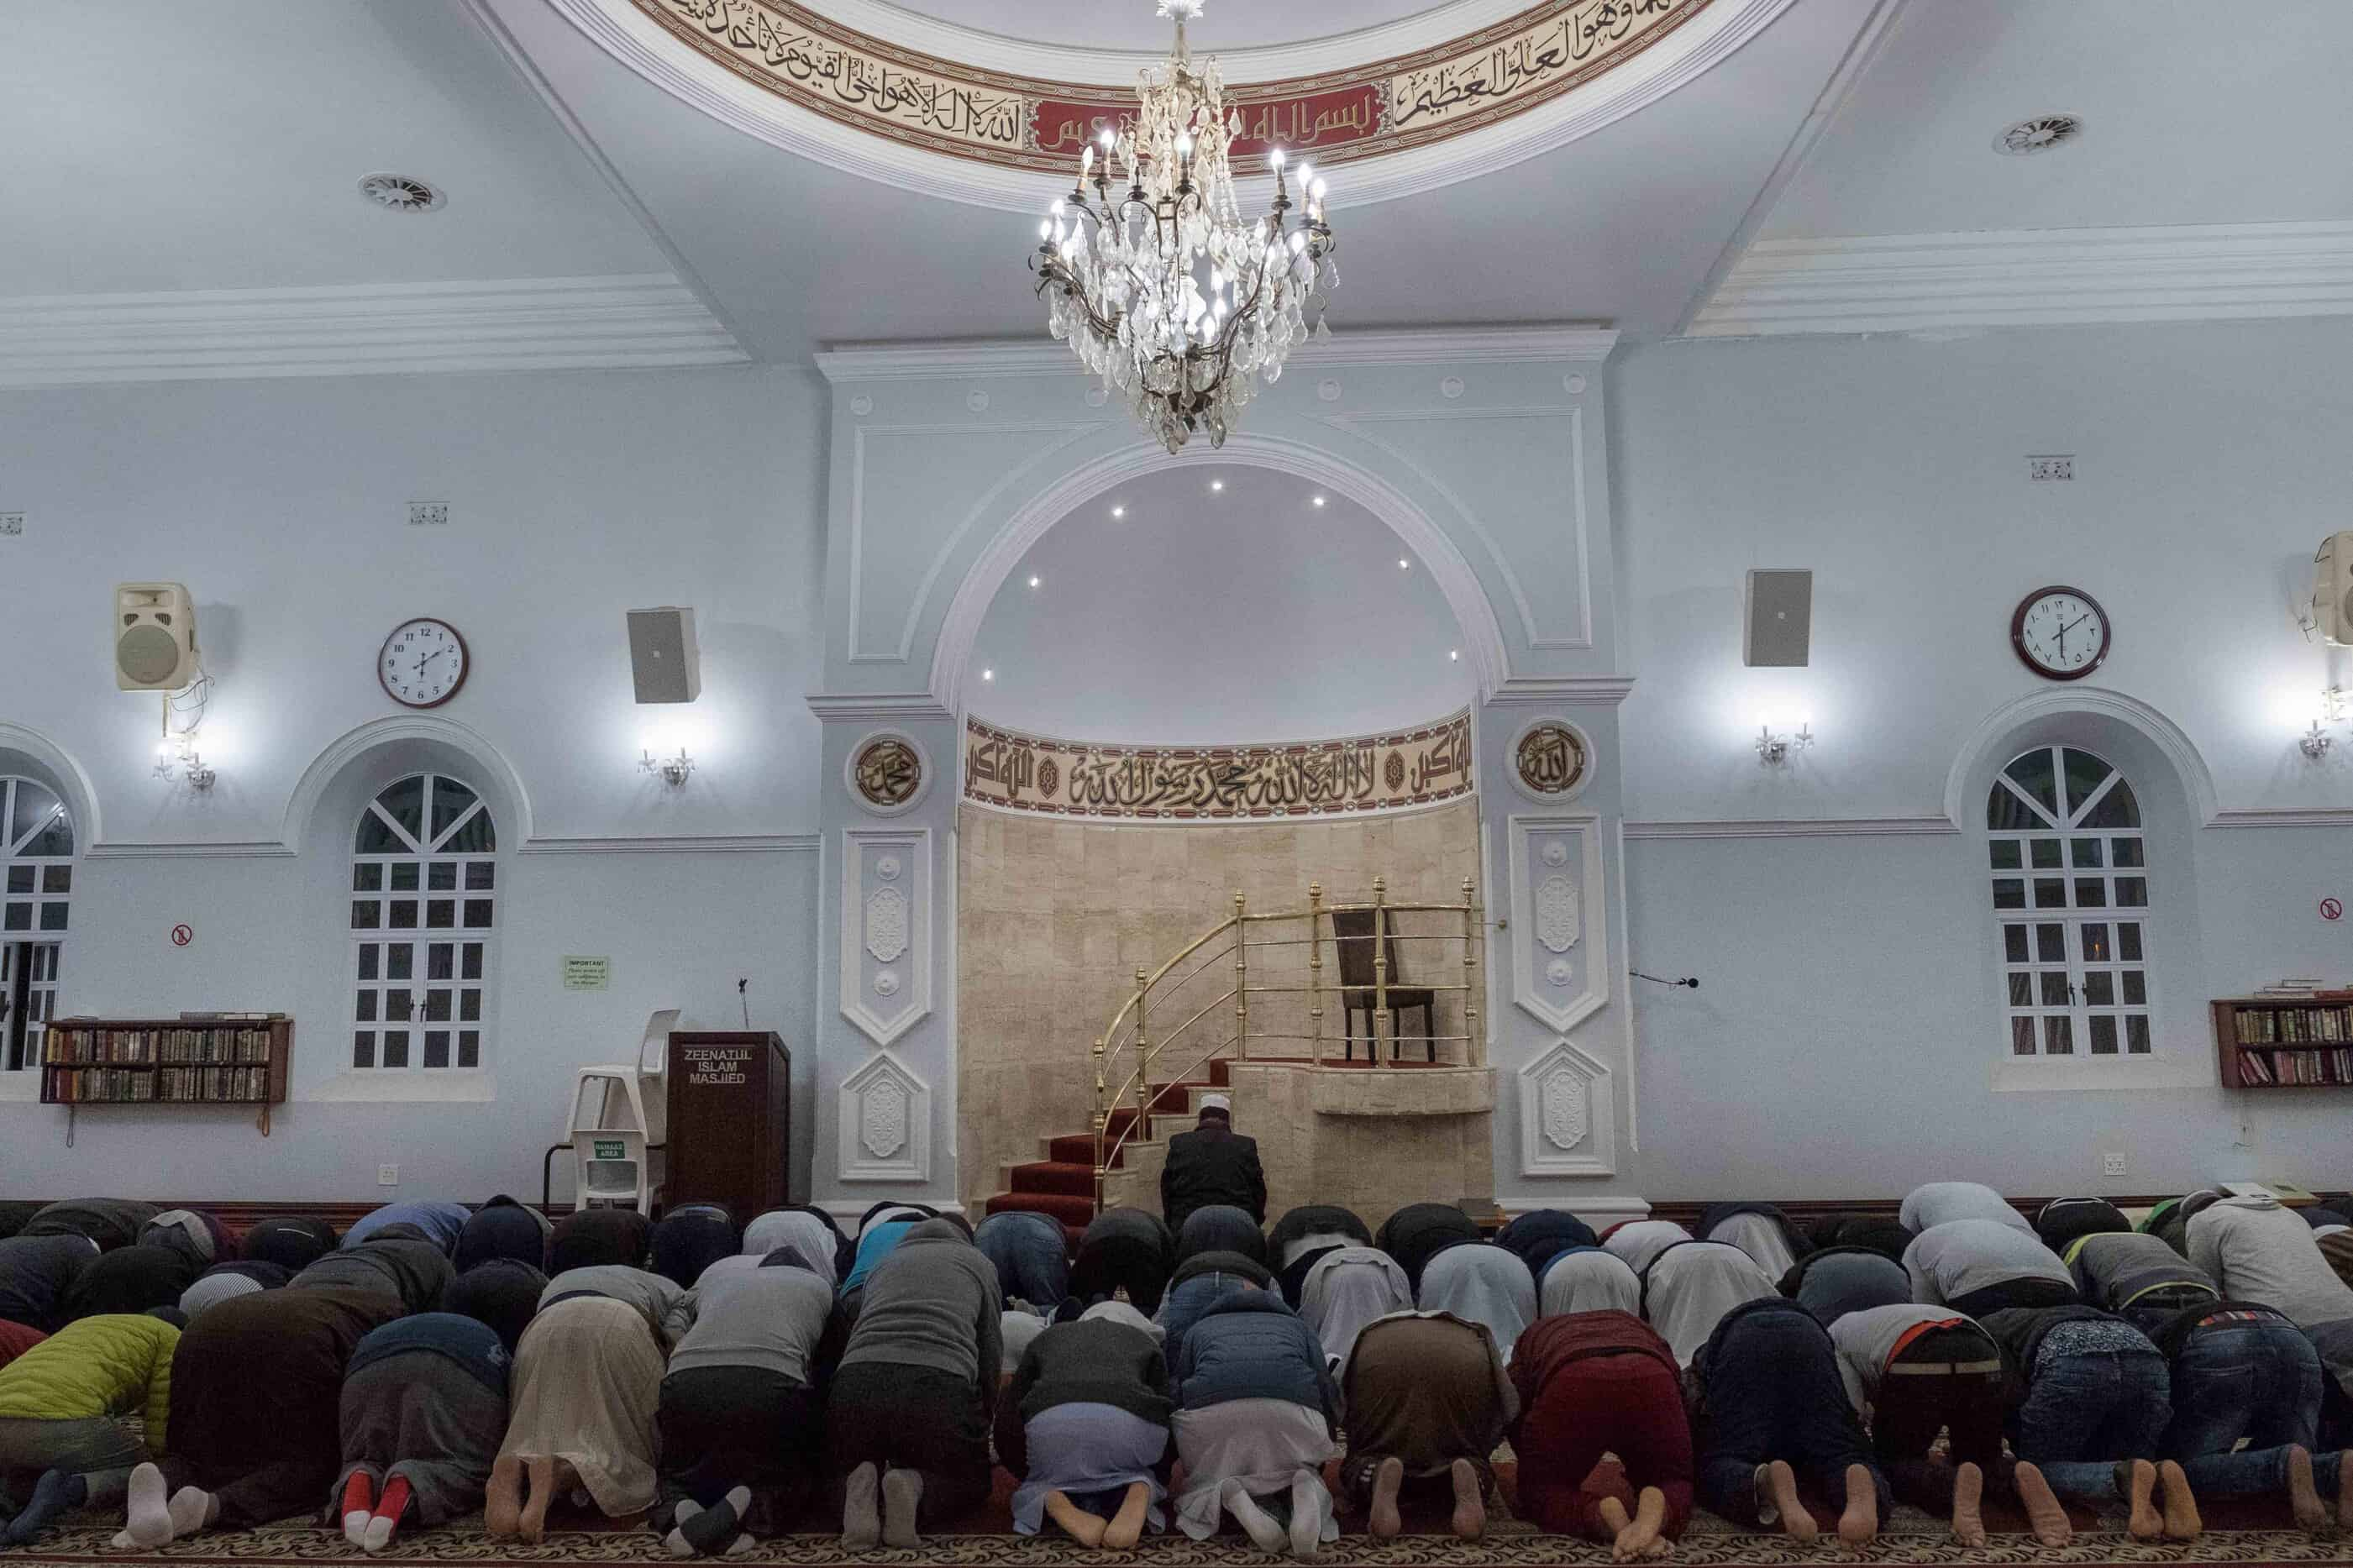 19 May 2019: Sheikh Moeghammad Moerat leads men in prayer at the Zeenatul Islam mosque in District Six, Cape Town.